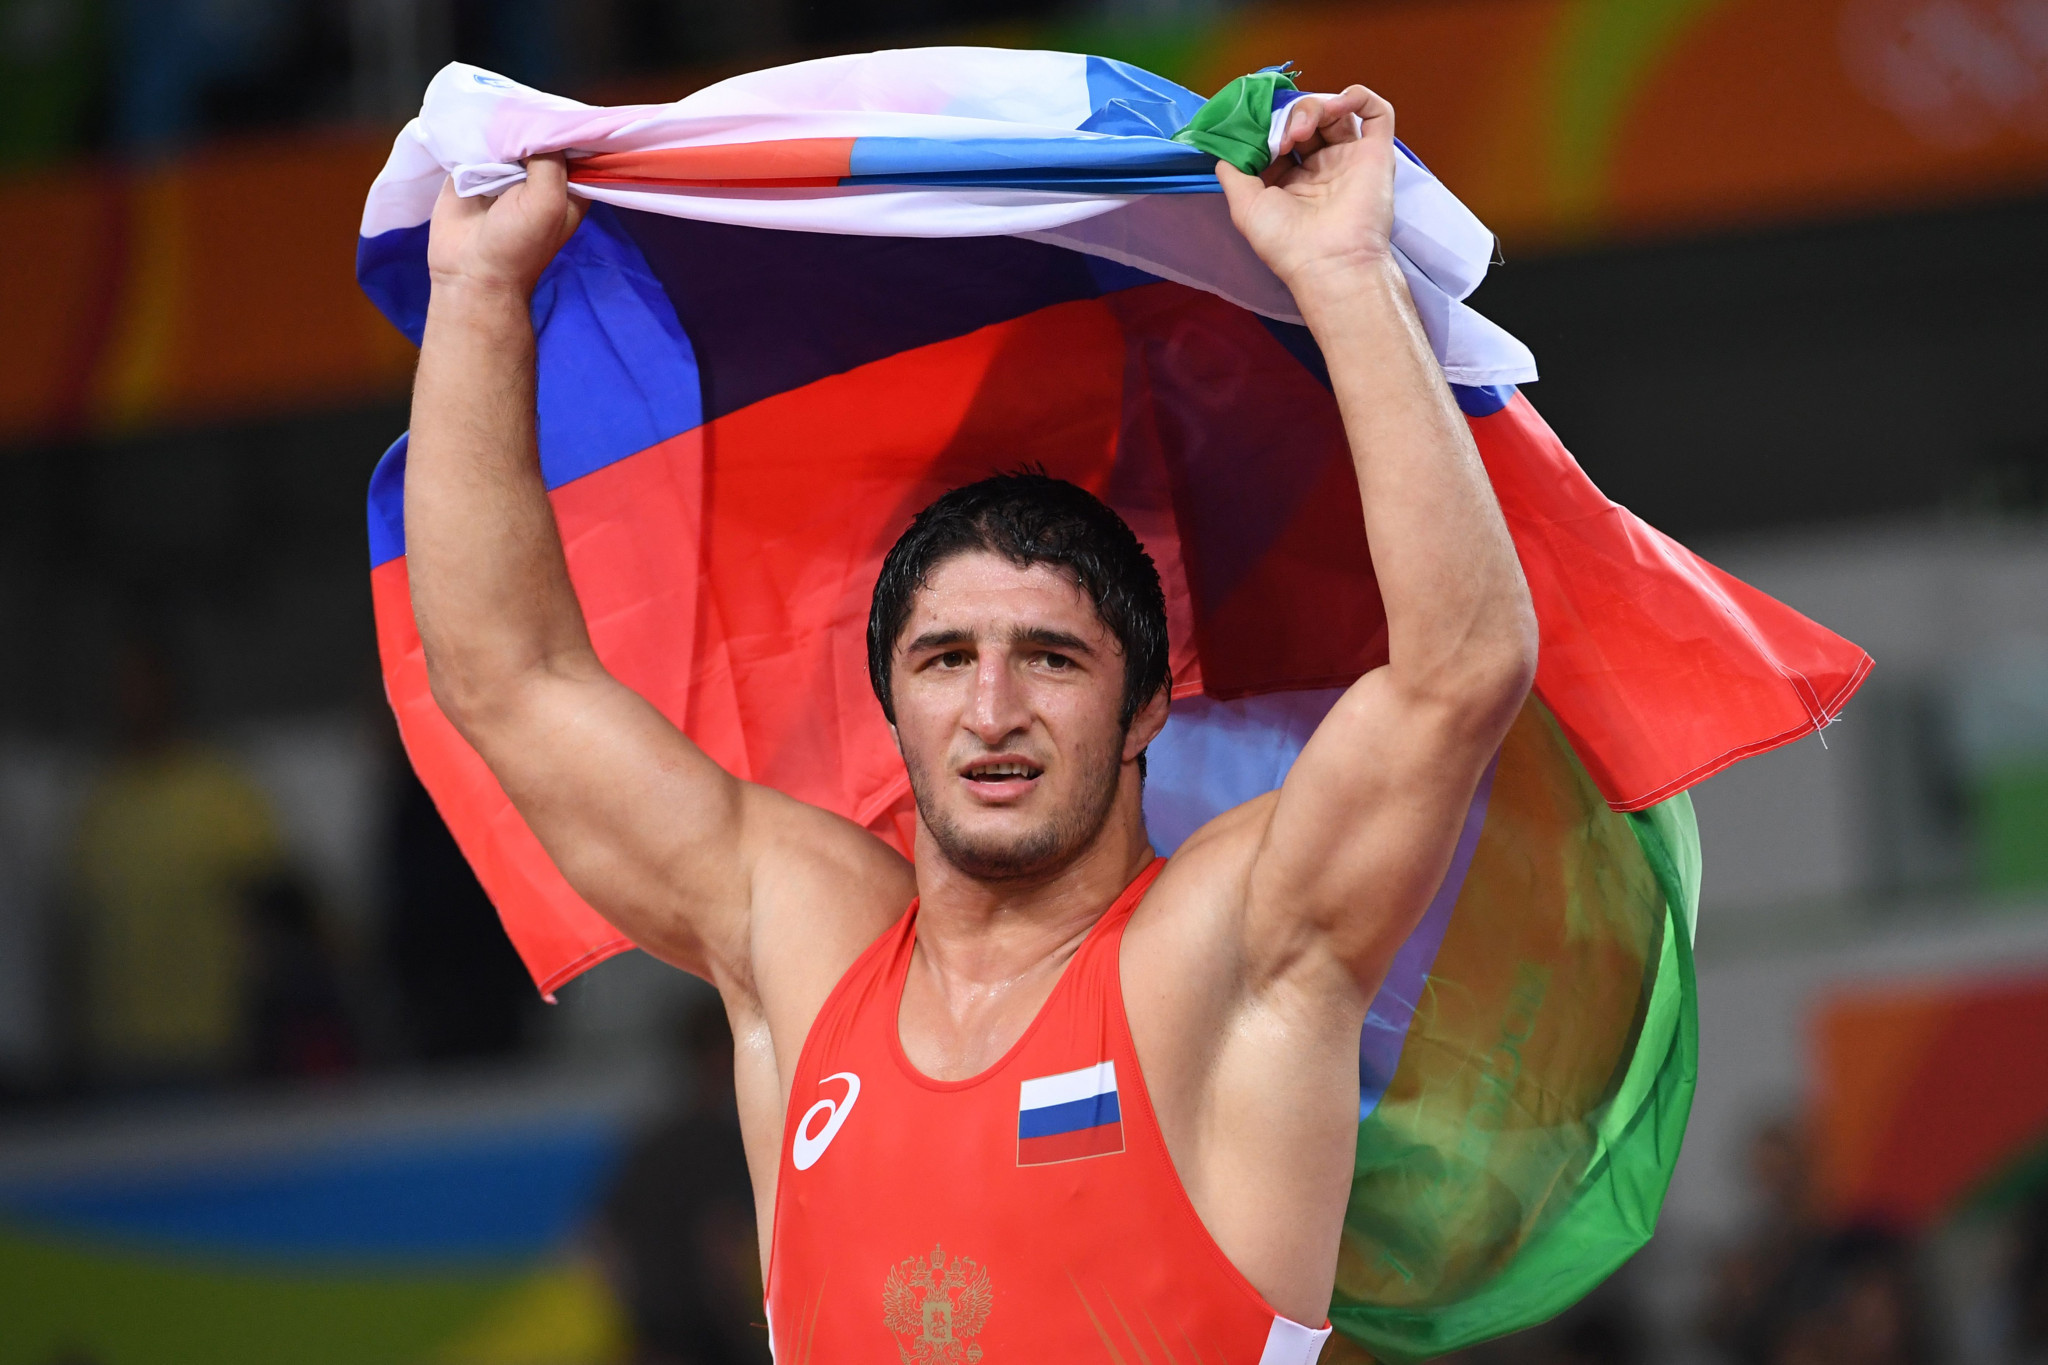 Rio 2016 freestyle wrestling gold medallist Abdulrashid Sadulaev is among six Olympic champions named by Russia in its team for the European Games in Minsk ©Getty Images